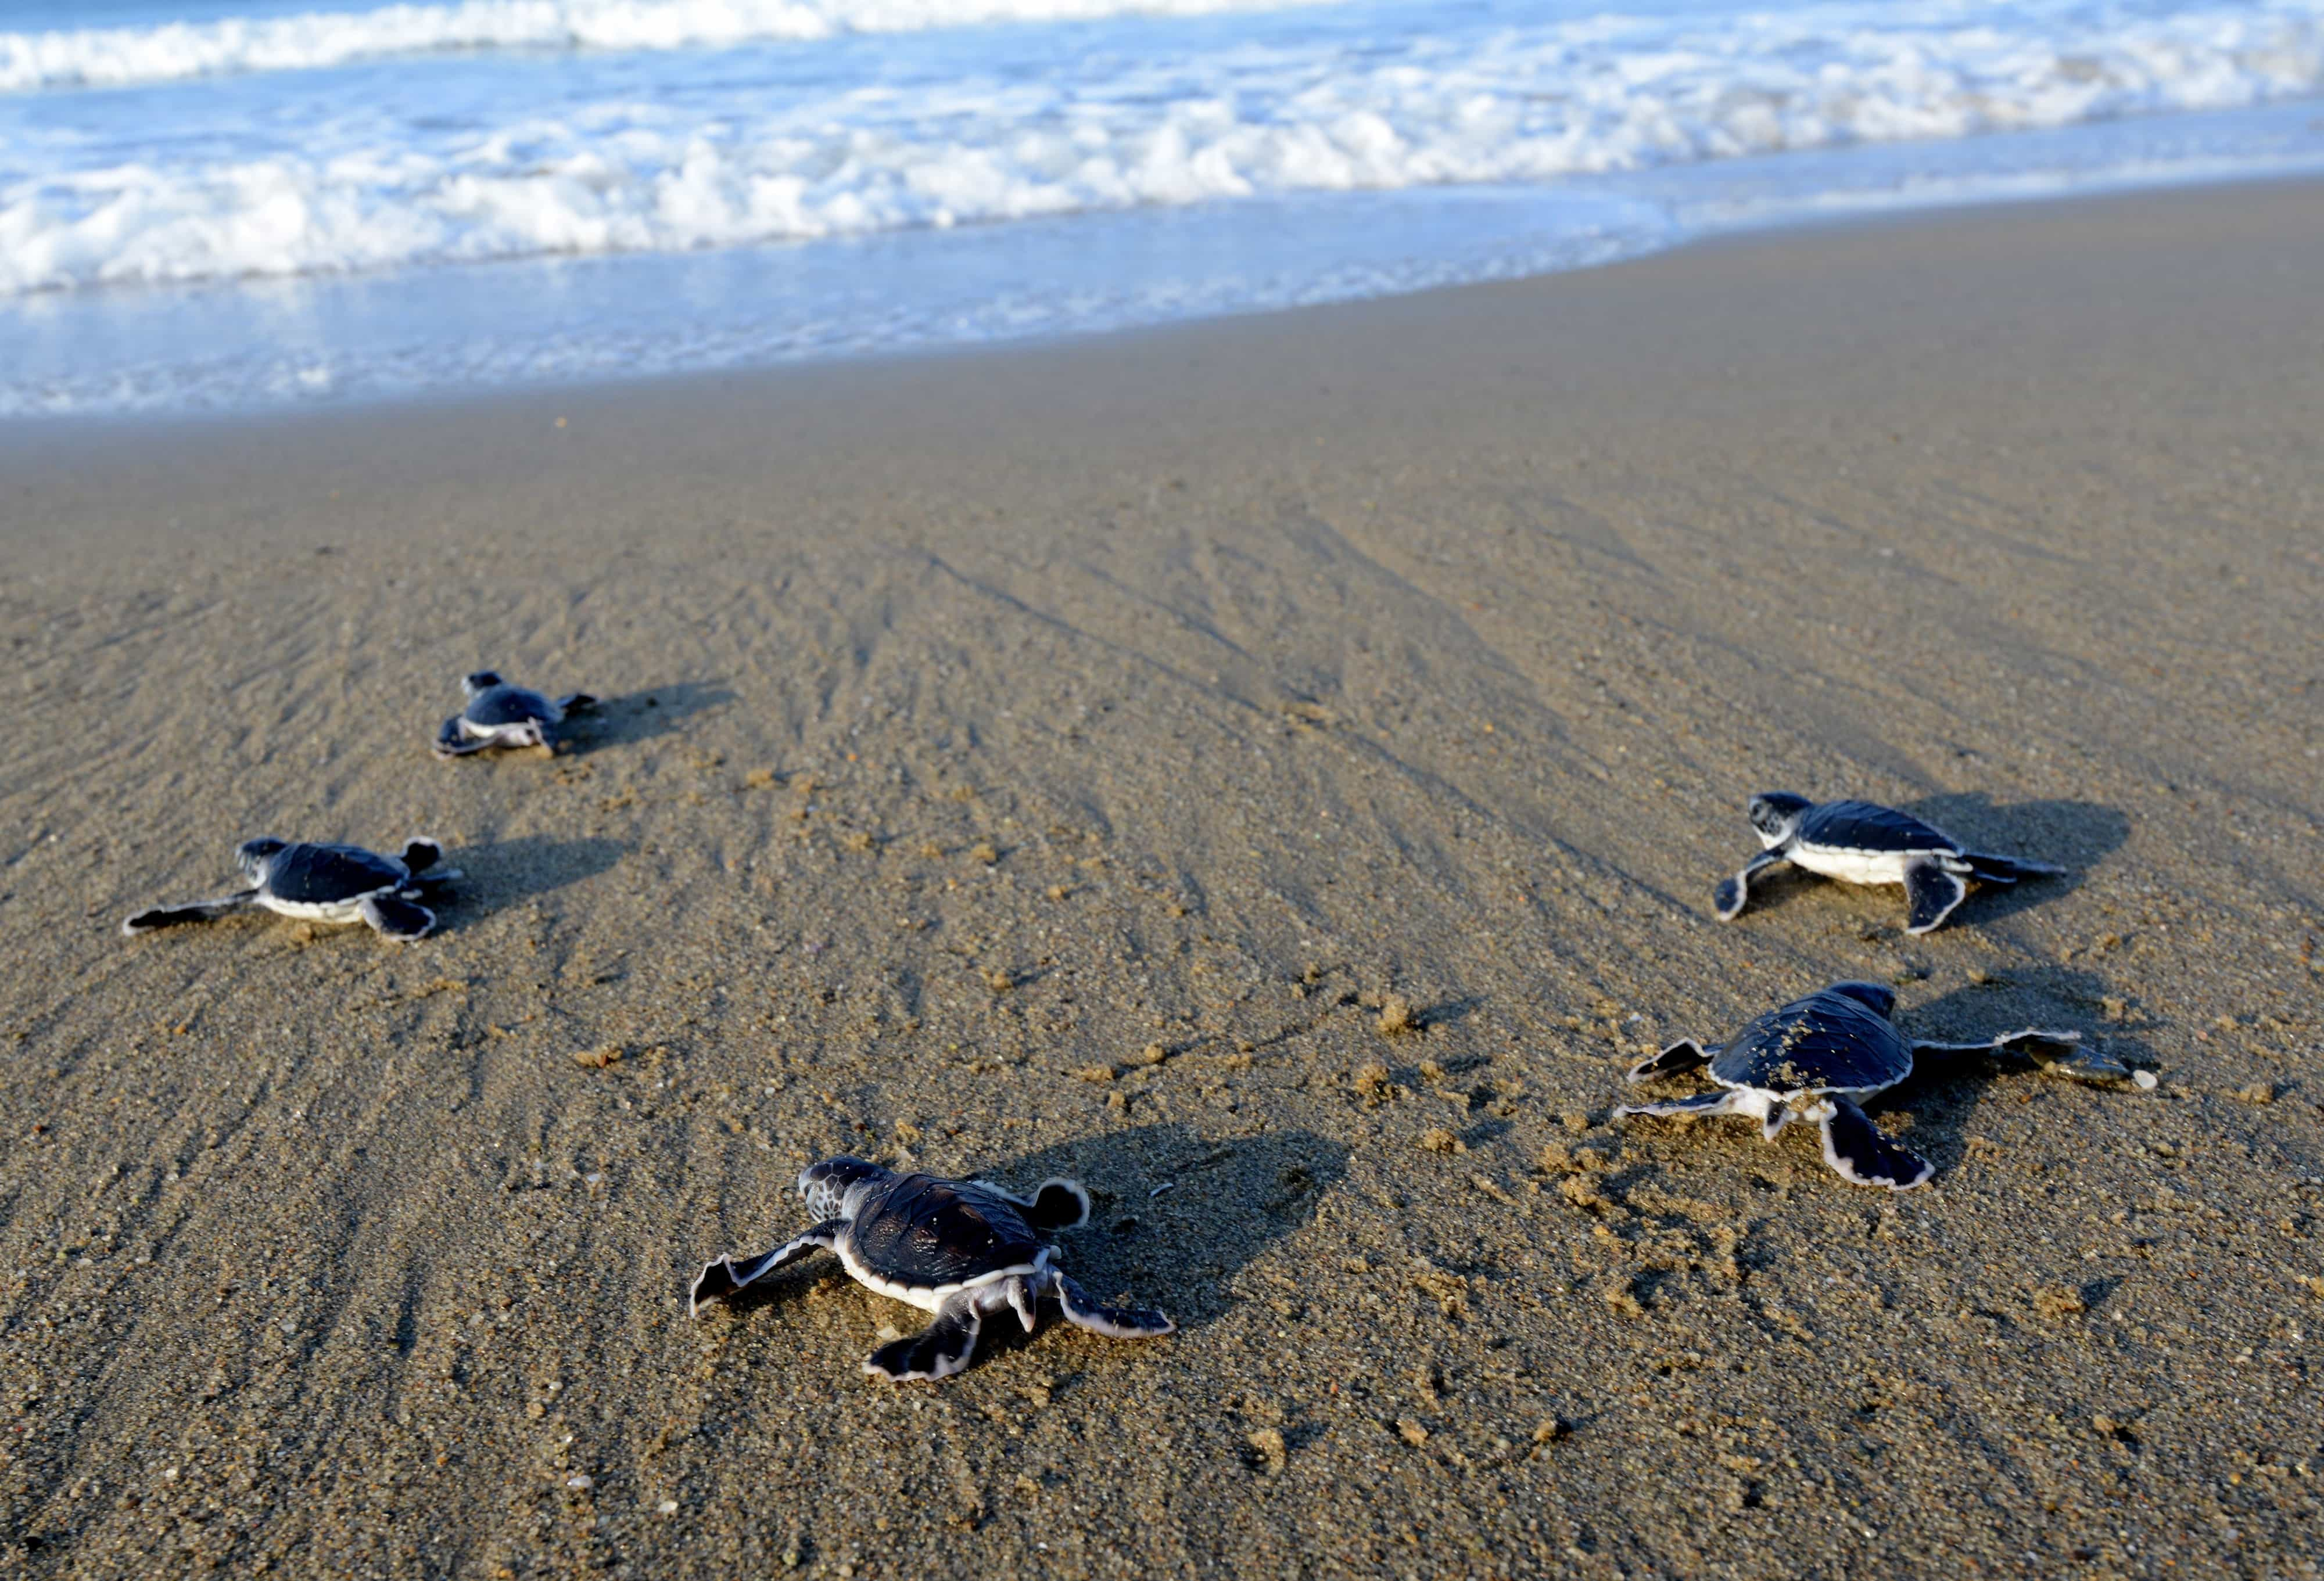 This photograph taken on March 23, 2014 shows baby green turtles crawling to the sea after being hatched and released at a turtle sanctuary on Sukamade island in Banyuwangi regency, East Java province.  Indonesia, at the crossroads of important migration routes next to the Pacific and Indian Oceans, is home to six out of seven of the world's turtle species.      AFP PHOTO  / SONNY TUMBELAKA        (Photo credit should read SONNY TUMBELAKA/AFP/Getty Images)